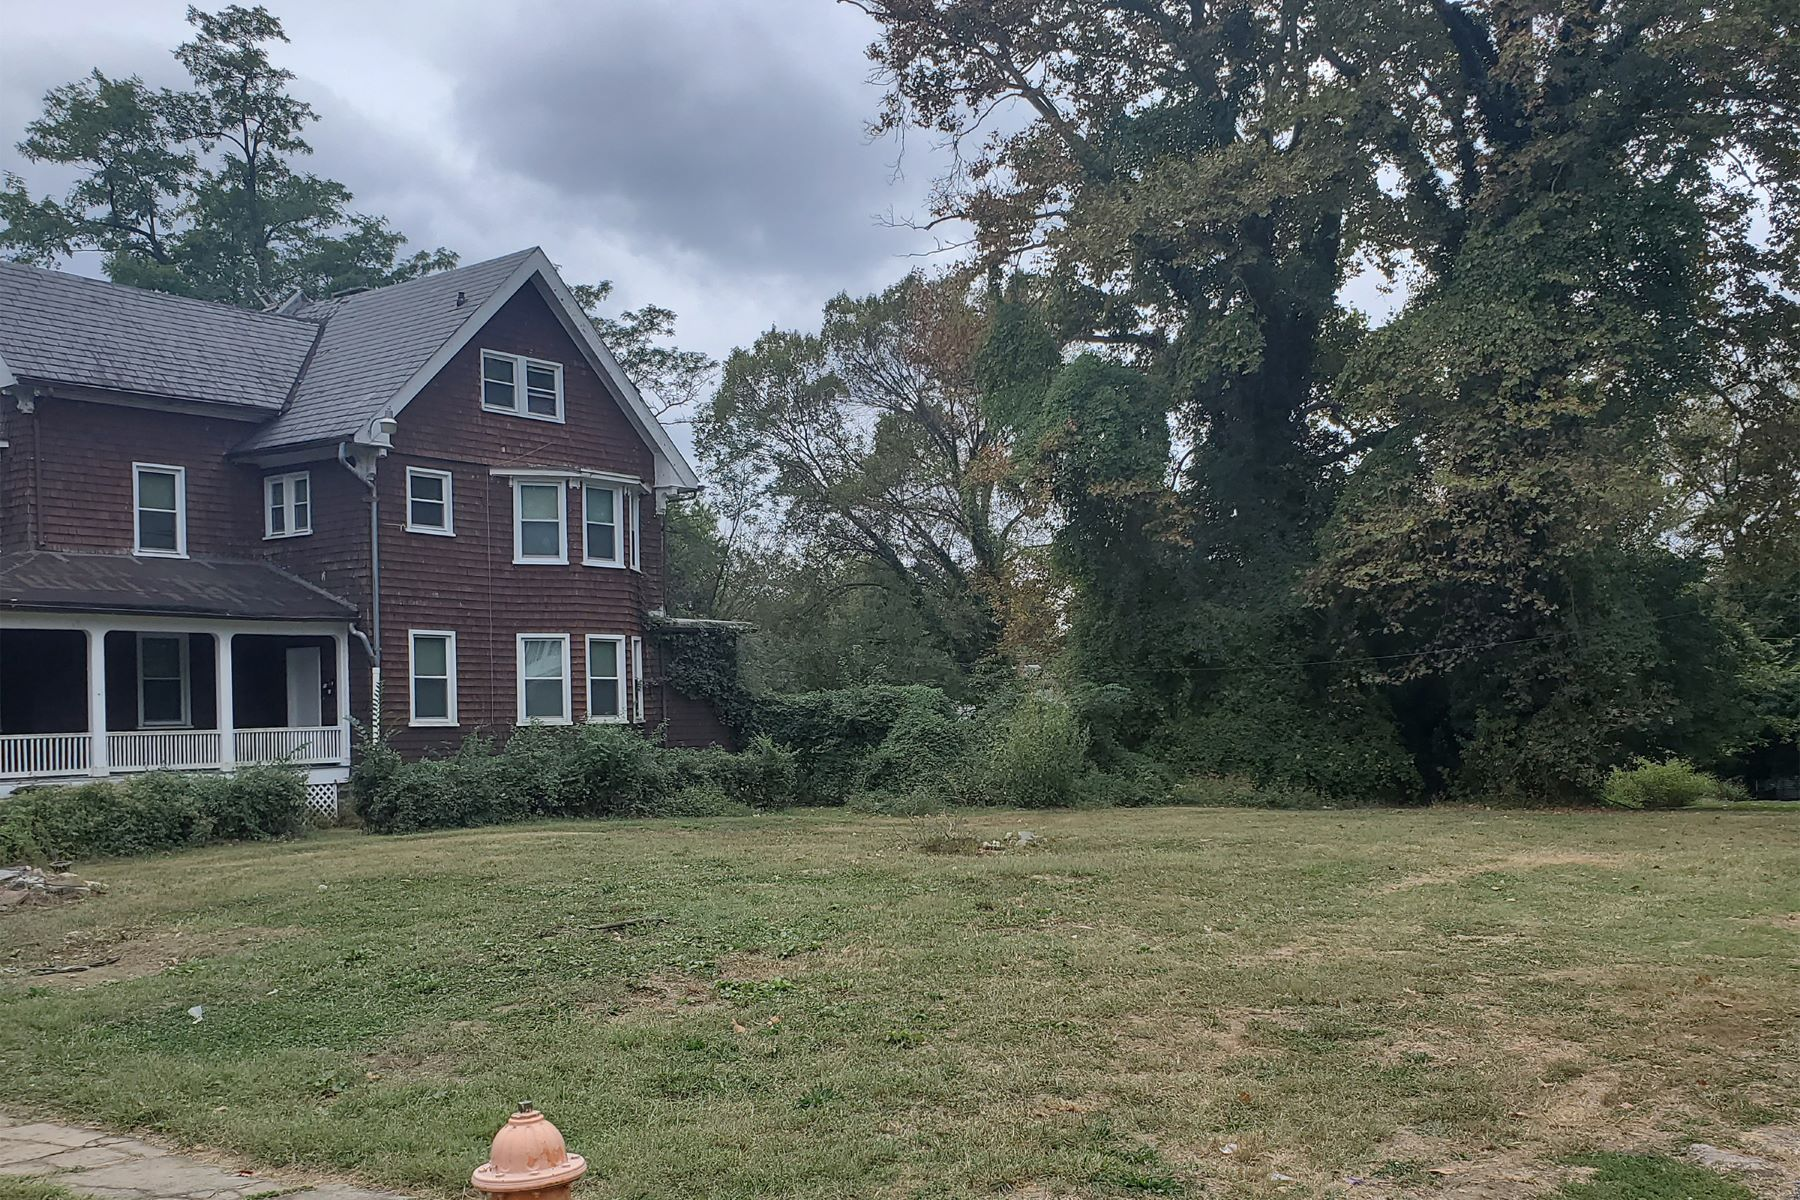 Land for Sale at Build to Suit Custom Home Opportunity 2104 Elsinore Avenue Baltimore, Maryland 21216 United States